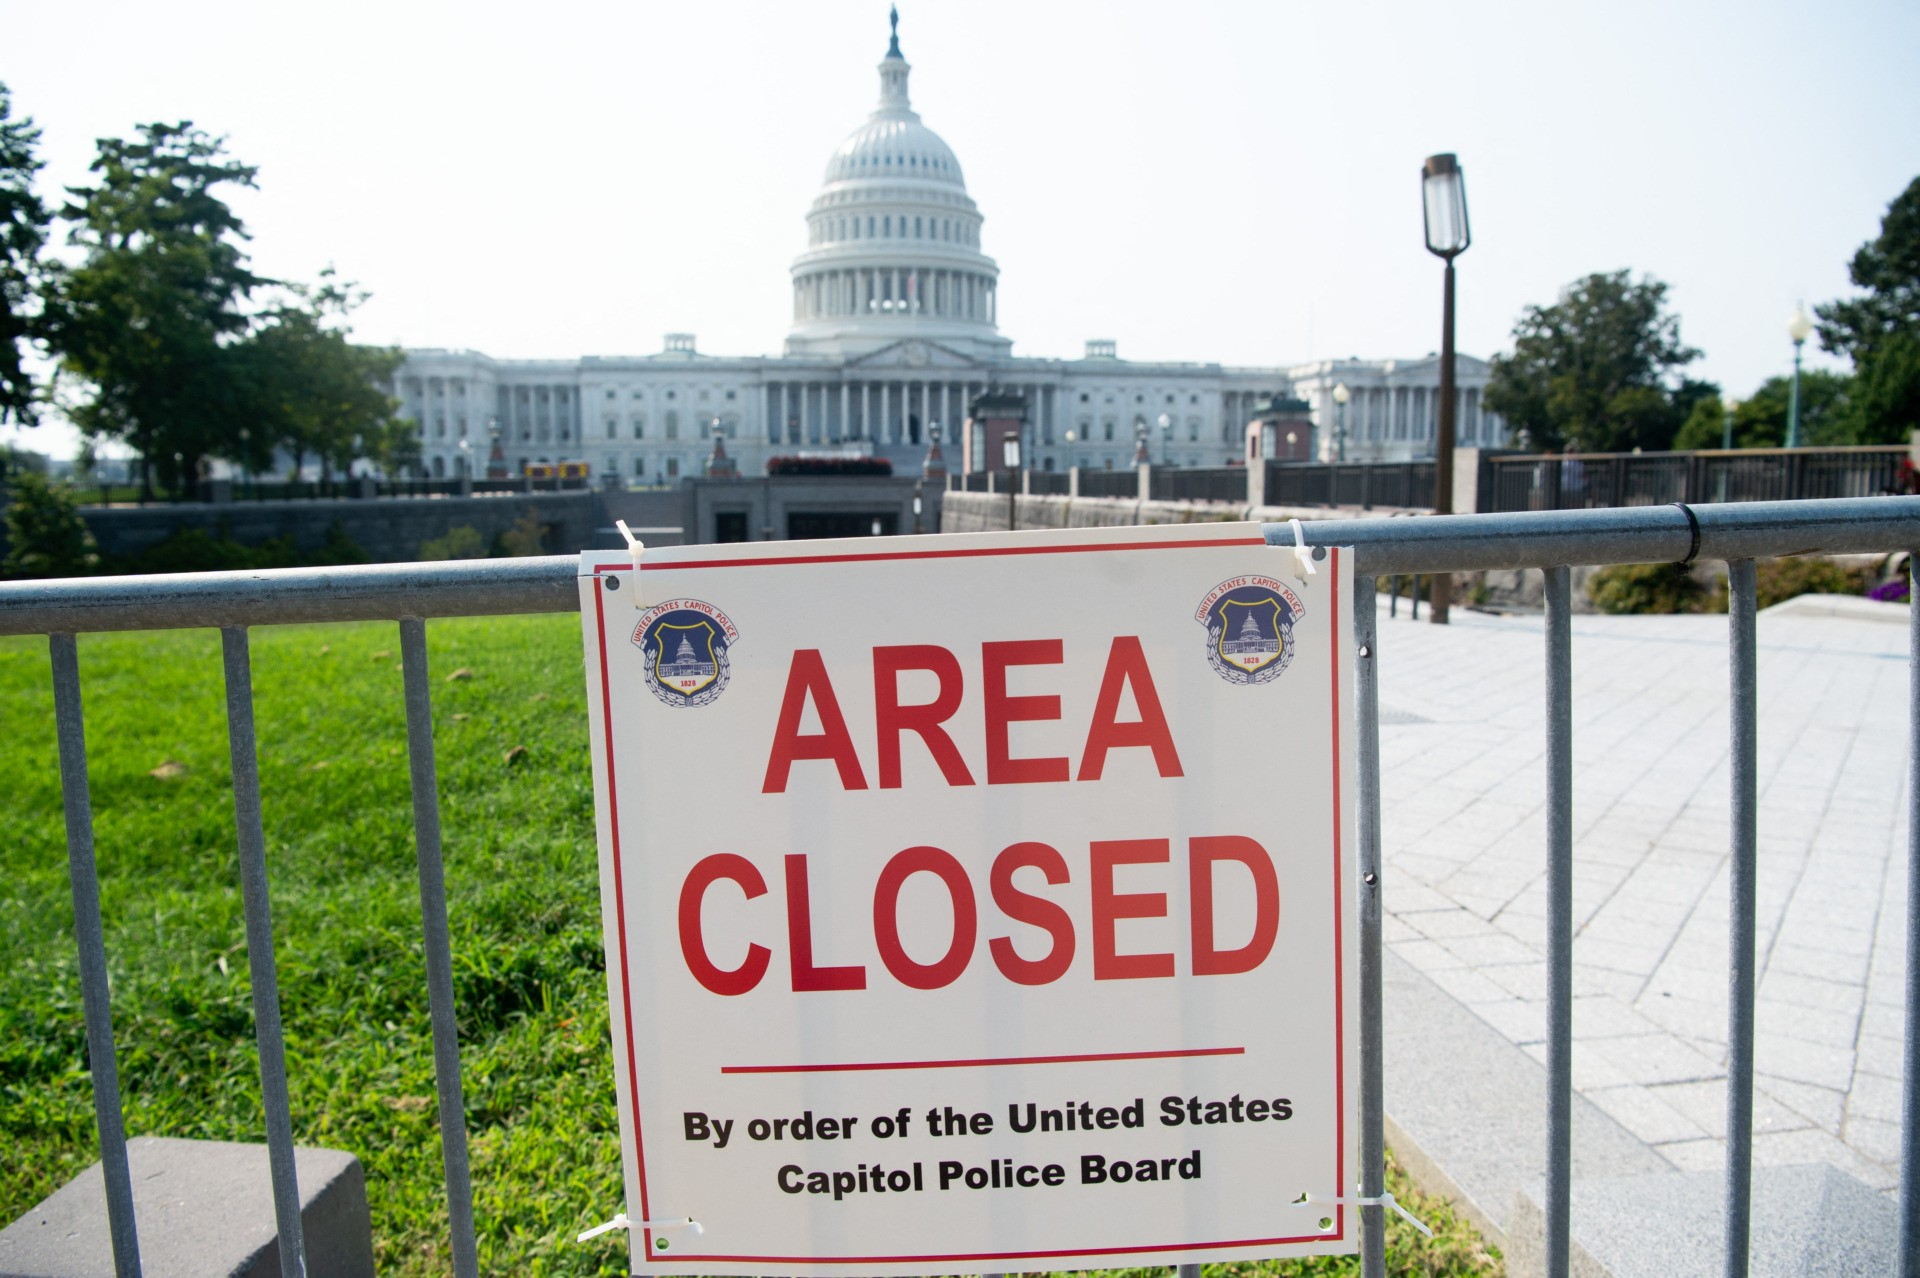 """An """"Area Closed"""" sign appears on temporary security fencing outside the US Capitol in Washington, DC, September 13, 2021, as security increases ahead of the planned September 18 rally in support of the January 6 insurrectionists on Capitol Hill. (Photo by SAUL LOEB / AFP) (Photo by SAUL LOEB/AFP via Getty Images)"""